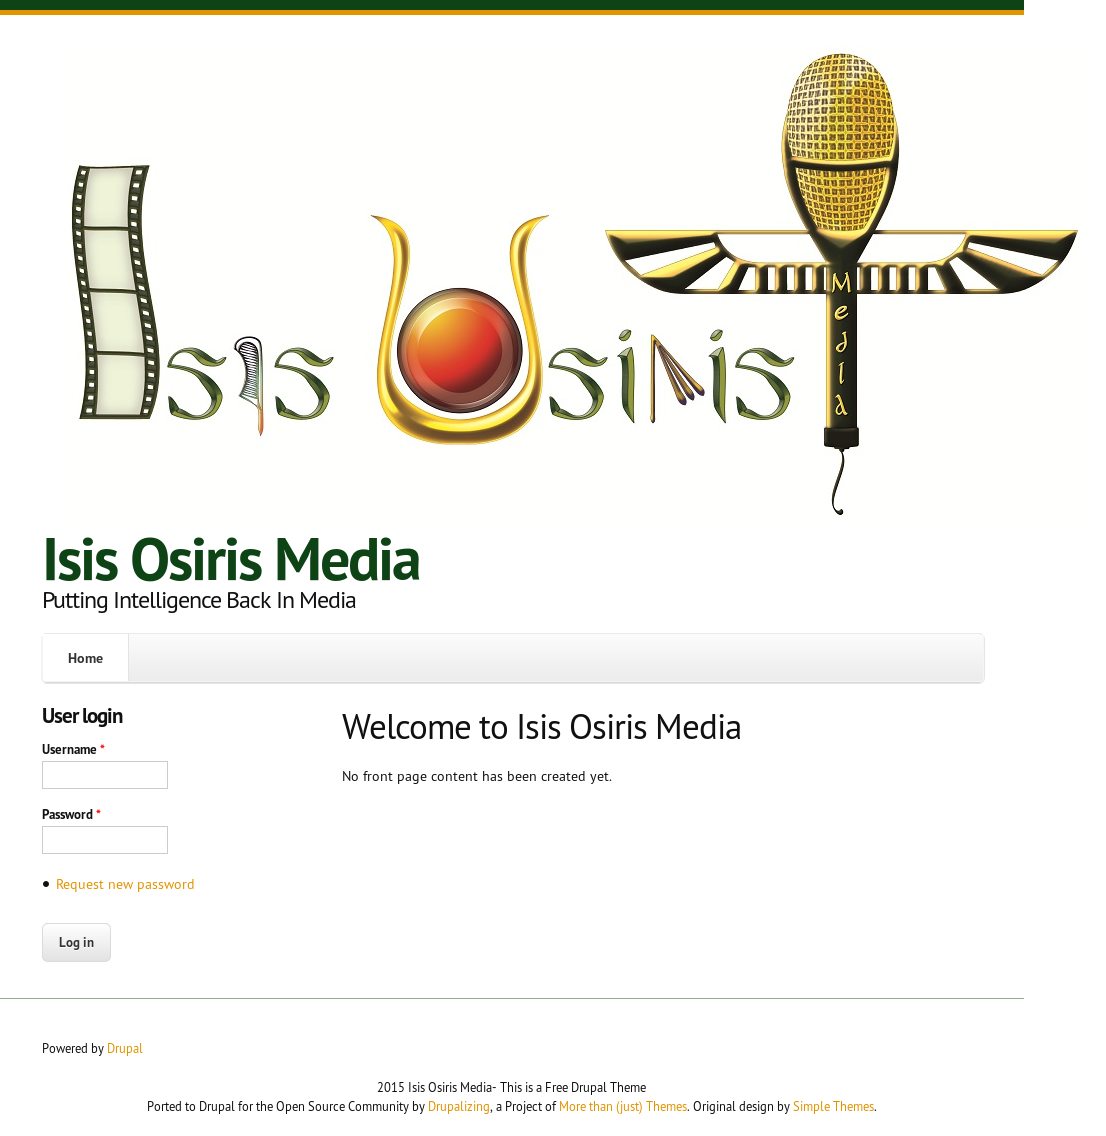 Isis Osiris Media Competitors, Revenue and Employees - Owler